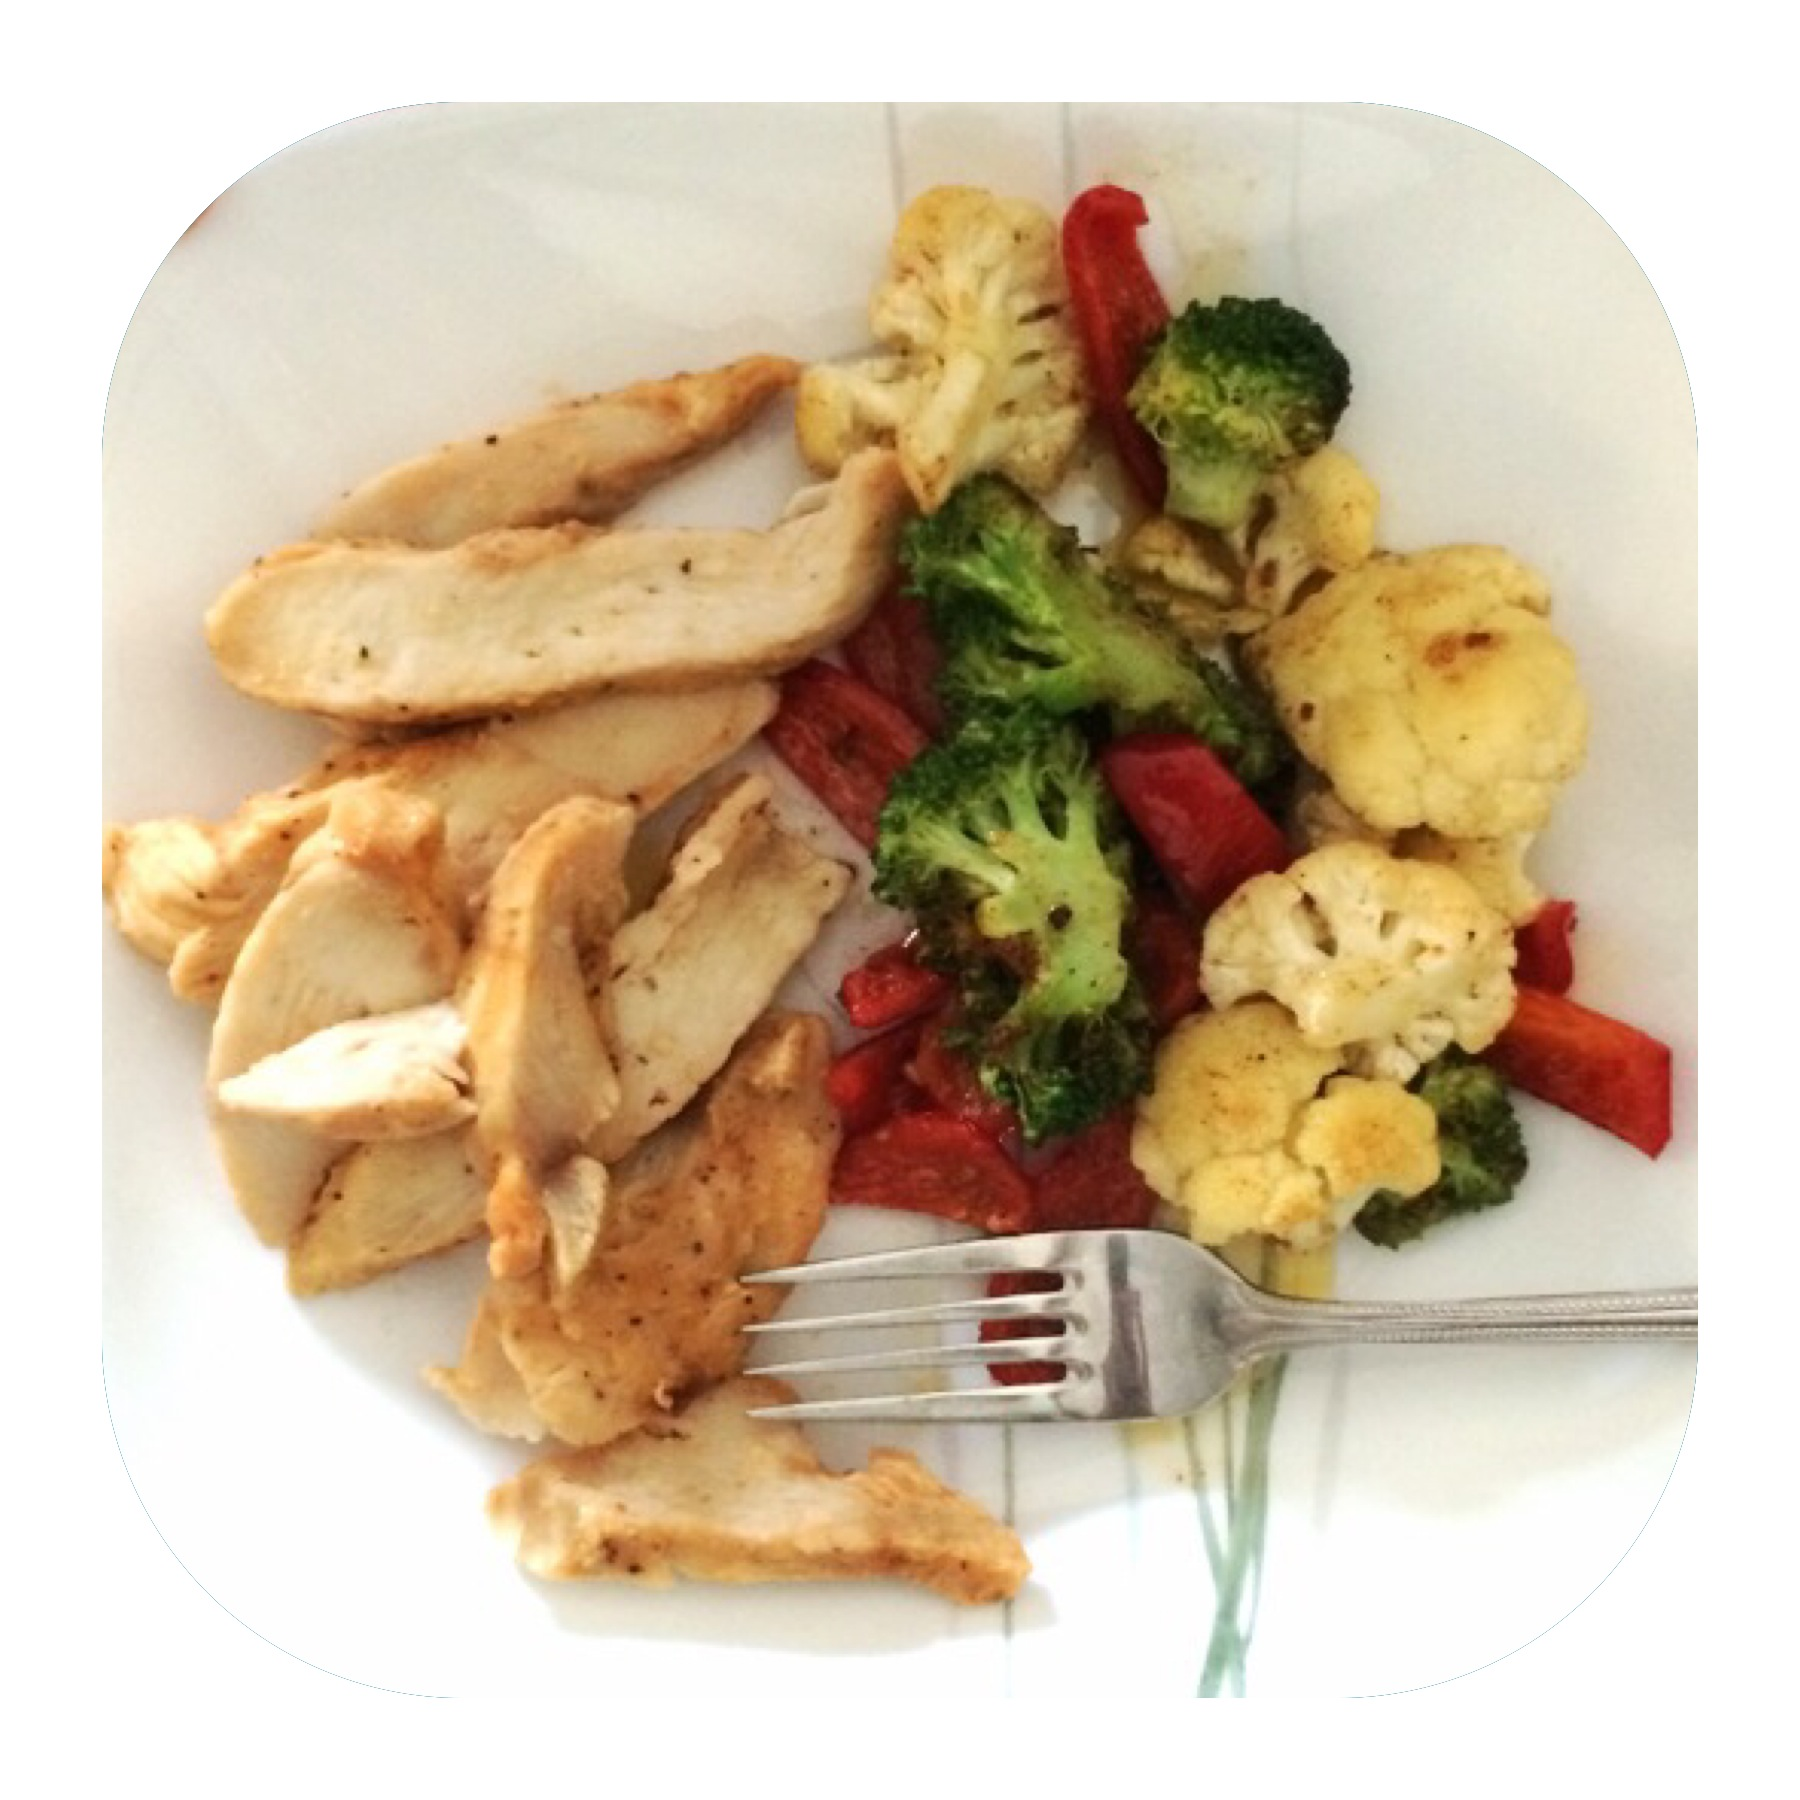 MONDAY MUNCHIES: 10 minute meal